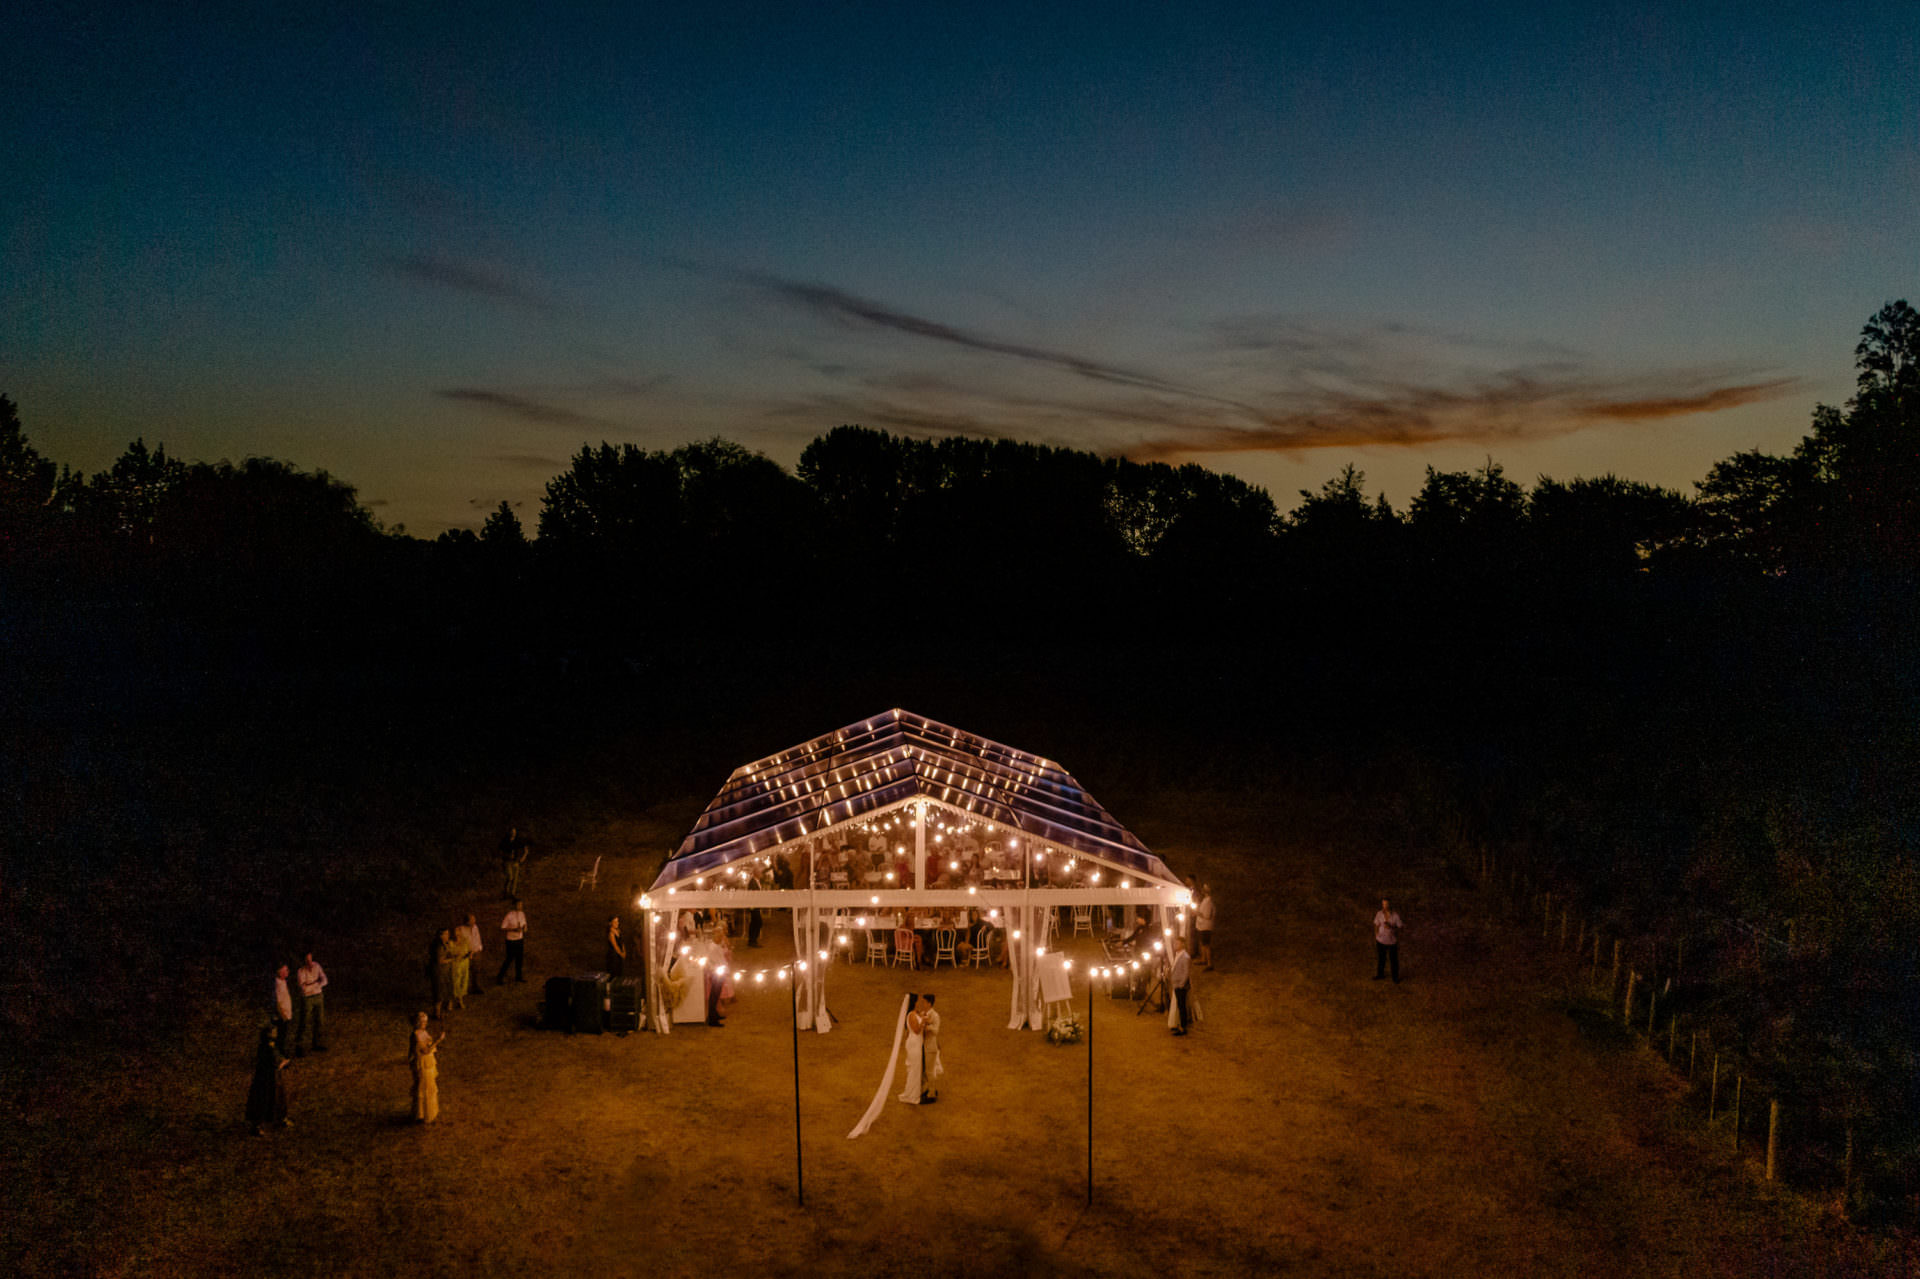 twelve tables clear marquee at night with festoons